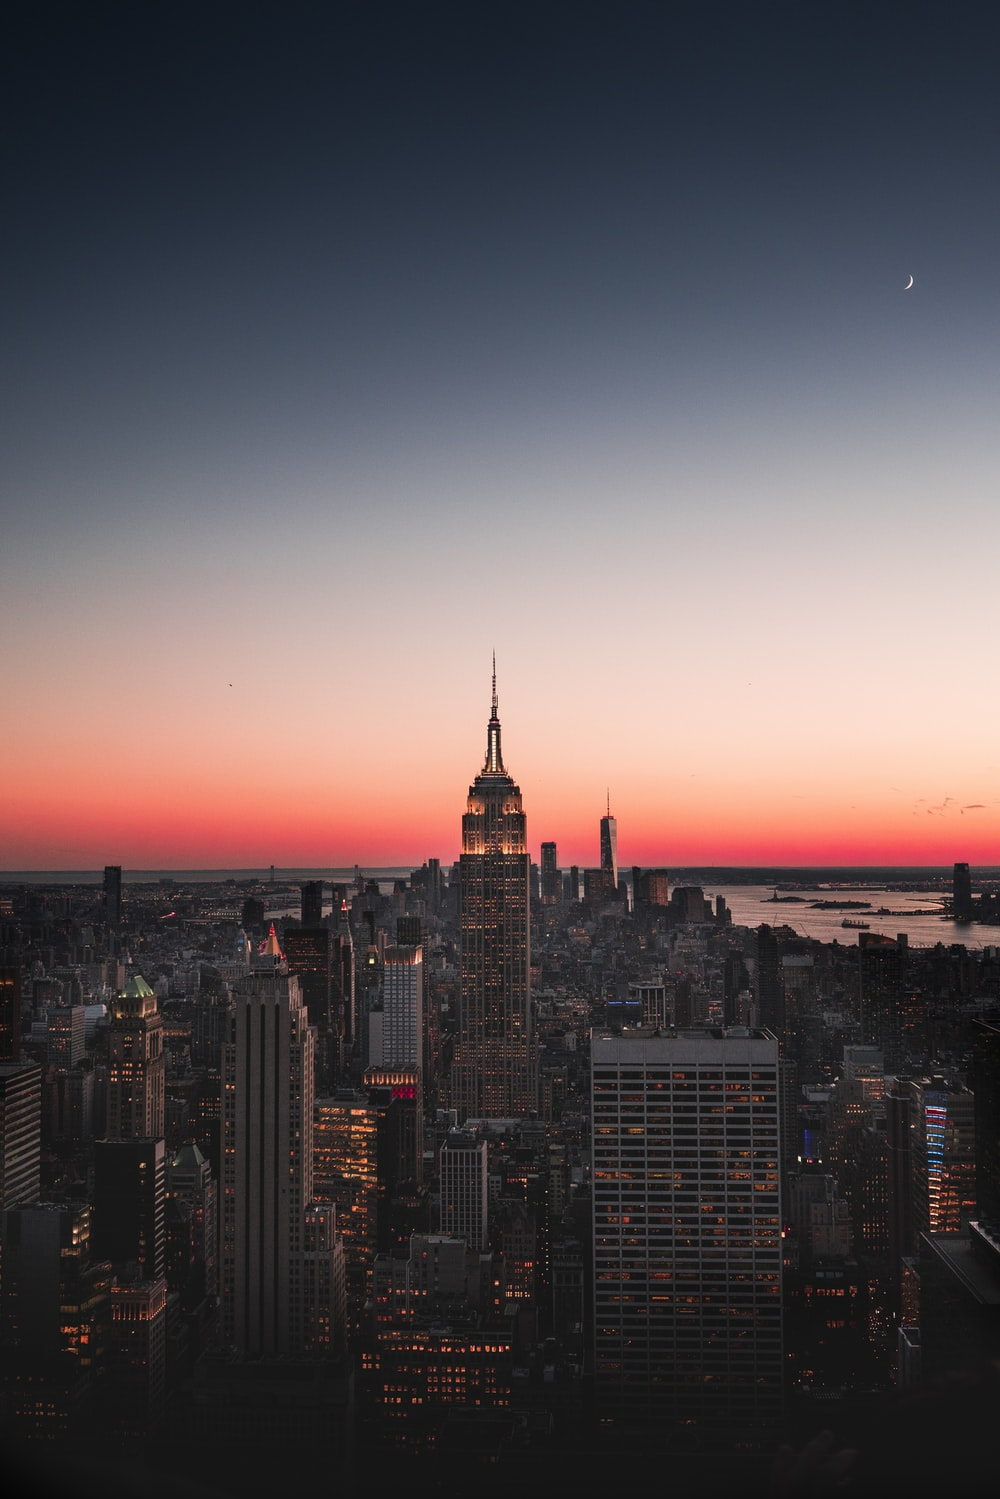 750 New York Night Pictures Download Free Images On Unsplash